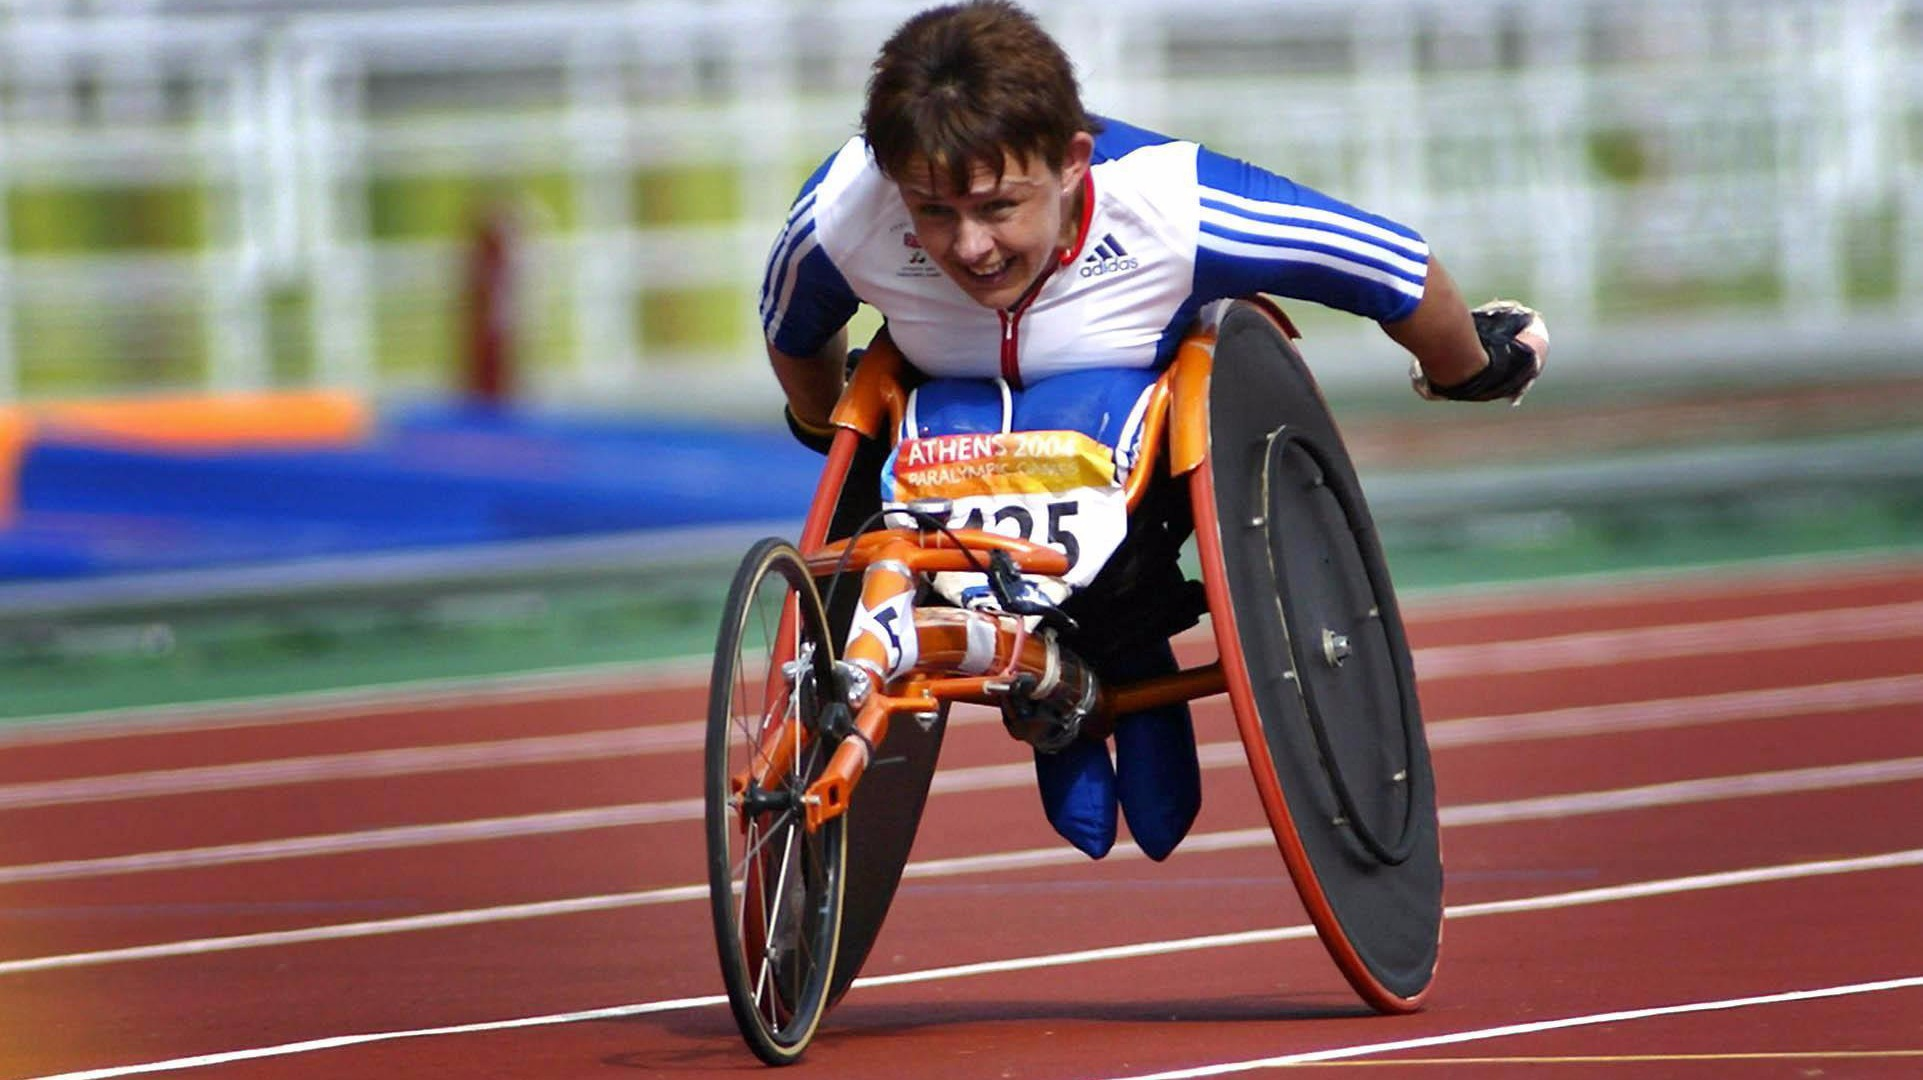 Tanni Grey-Thompson delighted by chancellor role | ITV News Tyne Tees